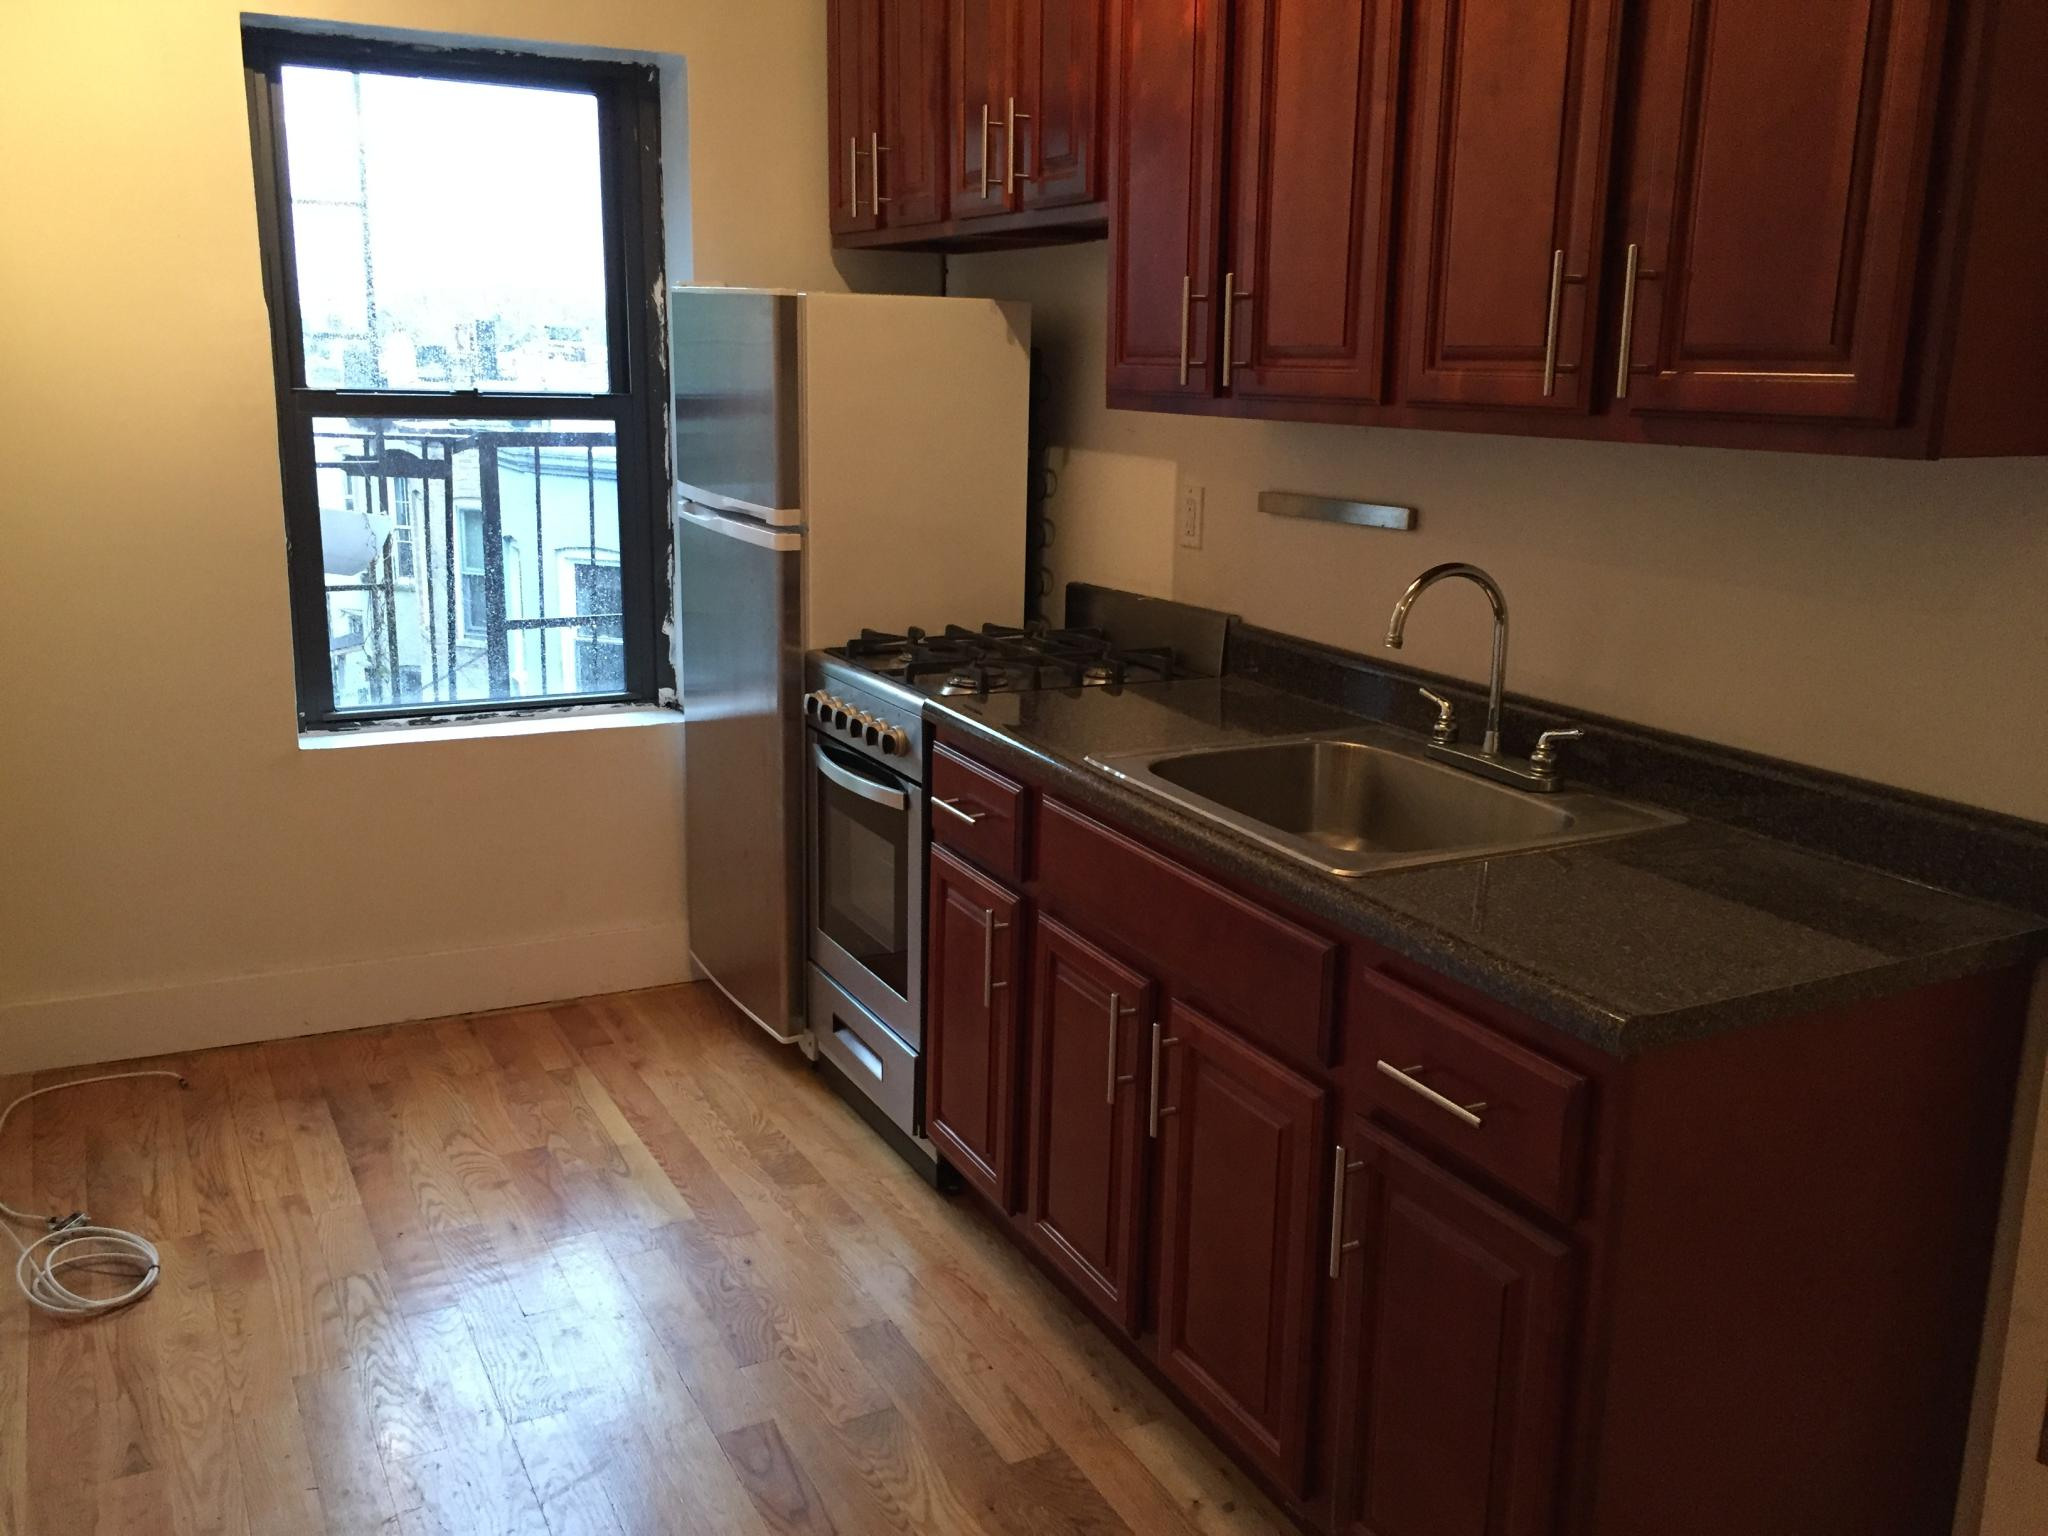 256 Lefferts Ave, Brooklyn, NY 11225 For Rent | Trulia